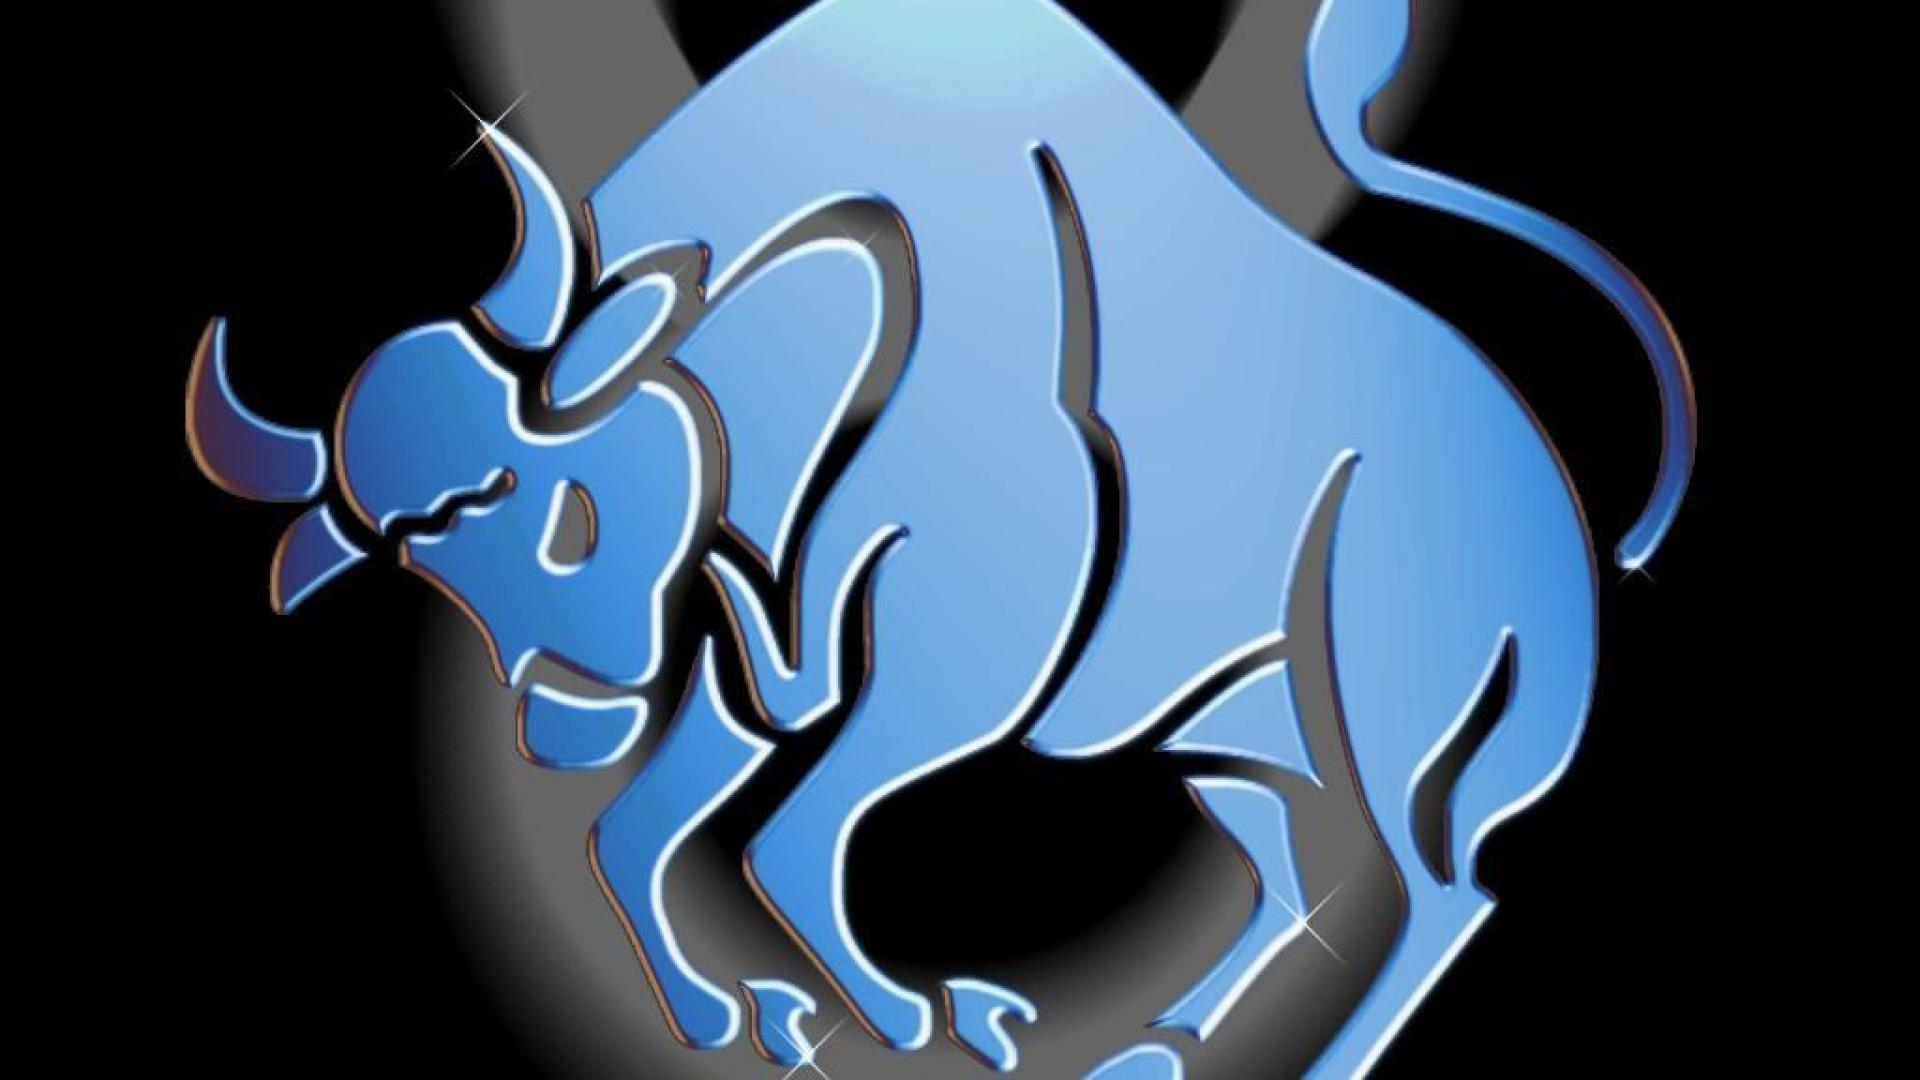 Taurus Backgrounds   Wallpaper High Definition High Quality 1920x1080